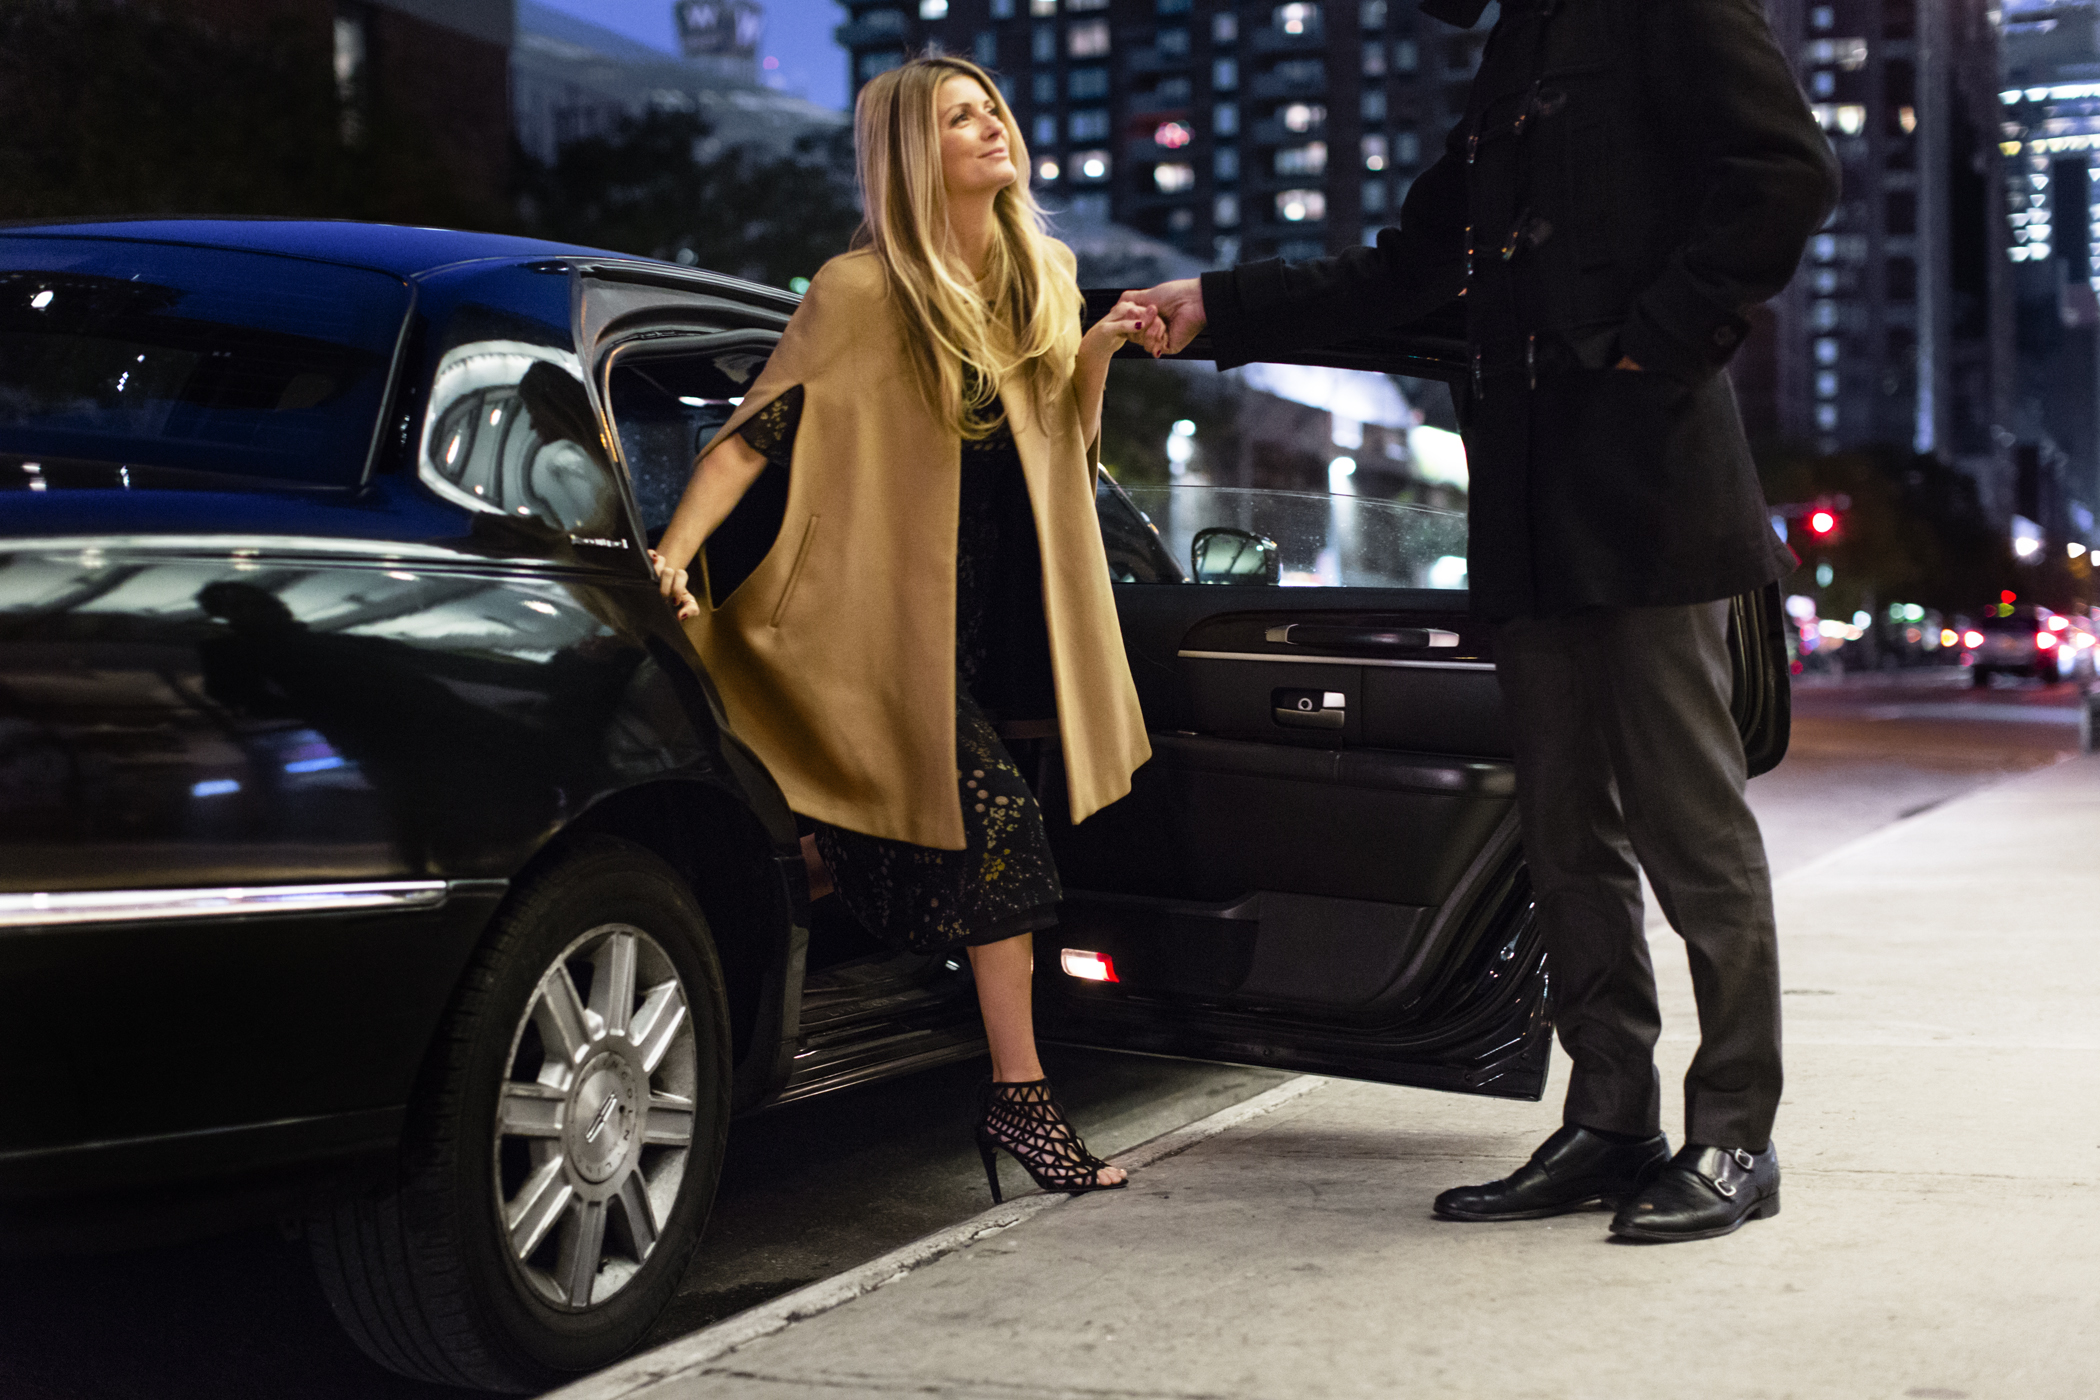 man helping woman in stylish clothes to get out of black car